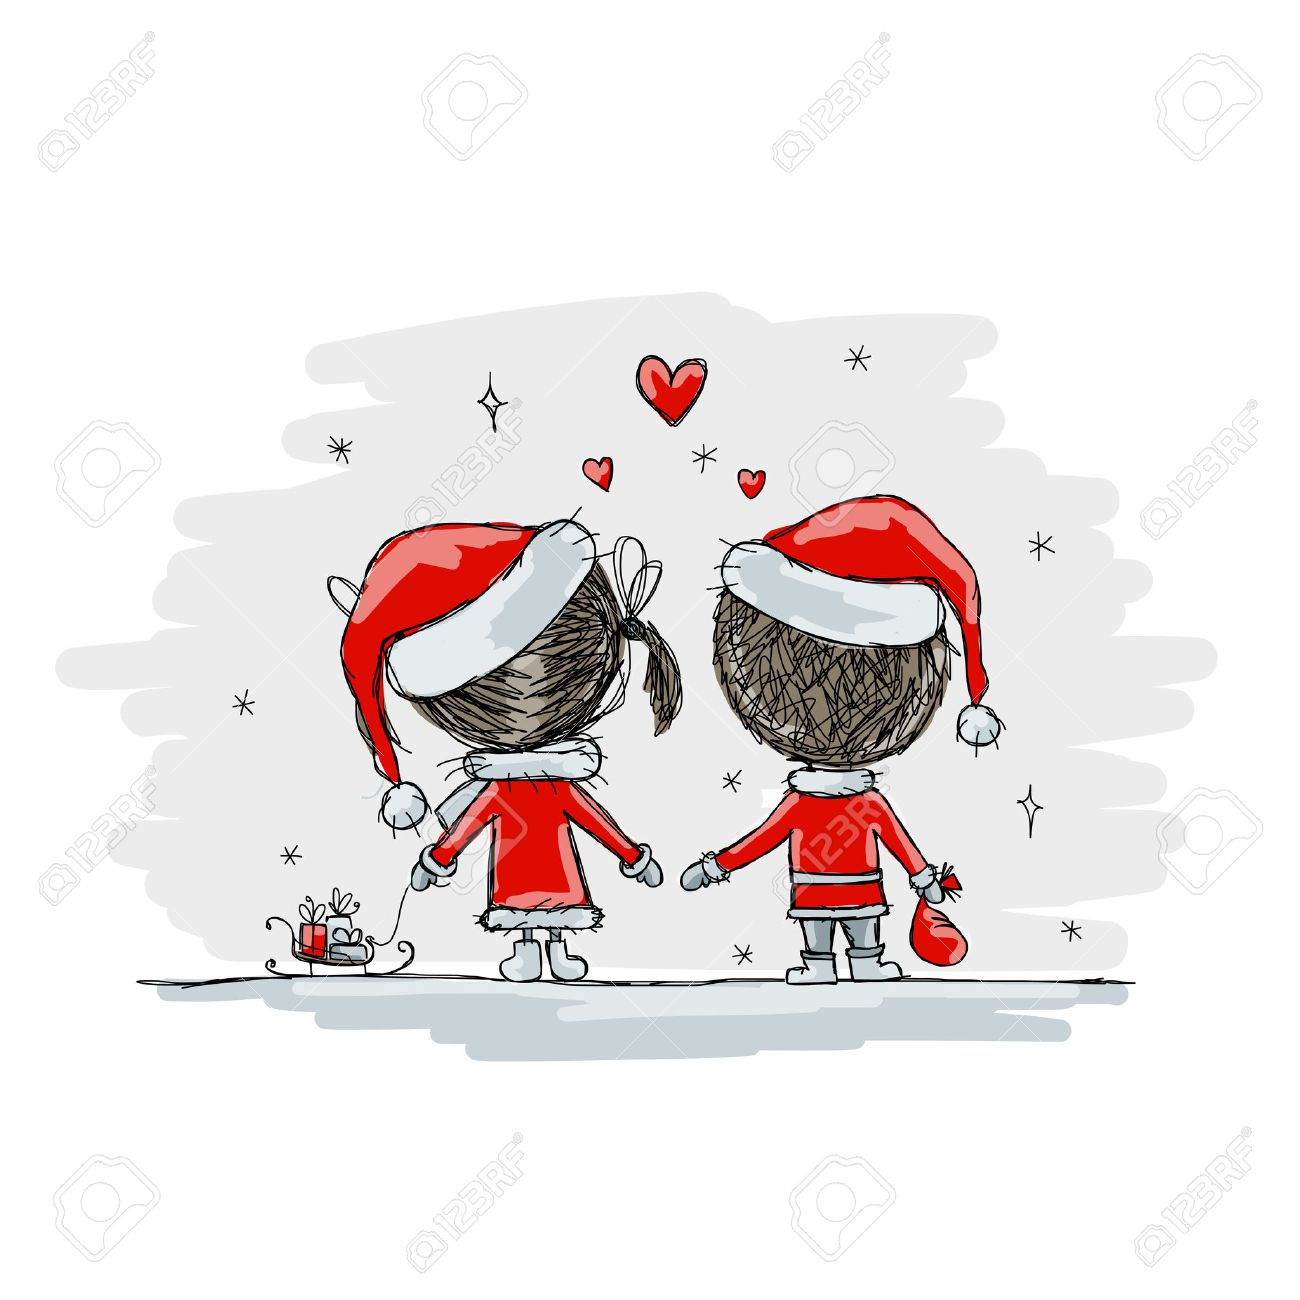 Couple in love together, christmas illustration for your design, vector Stock Vector - 45592579